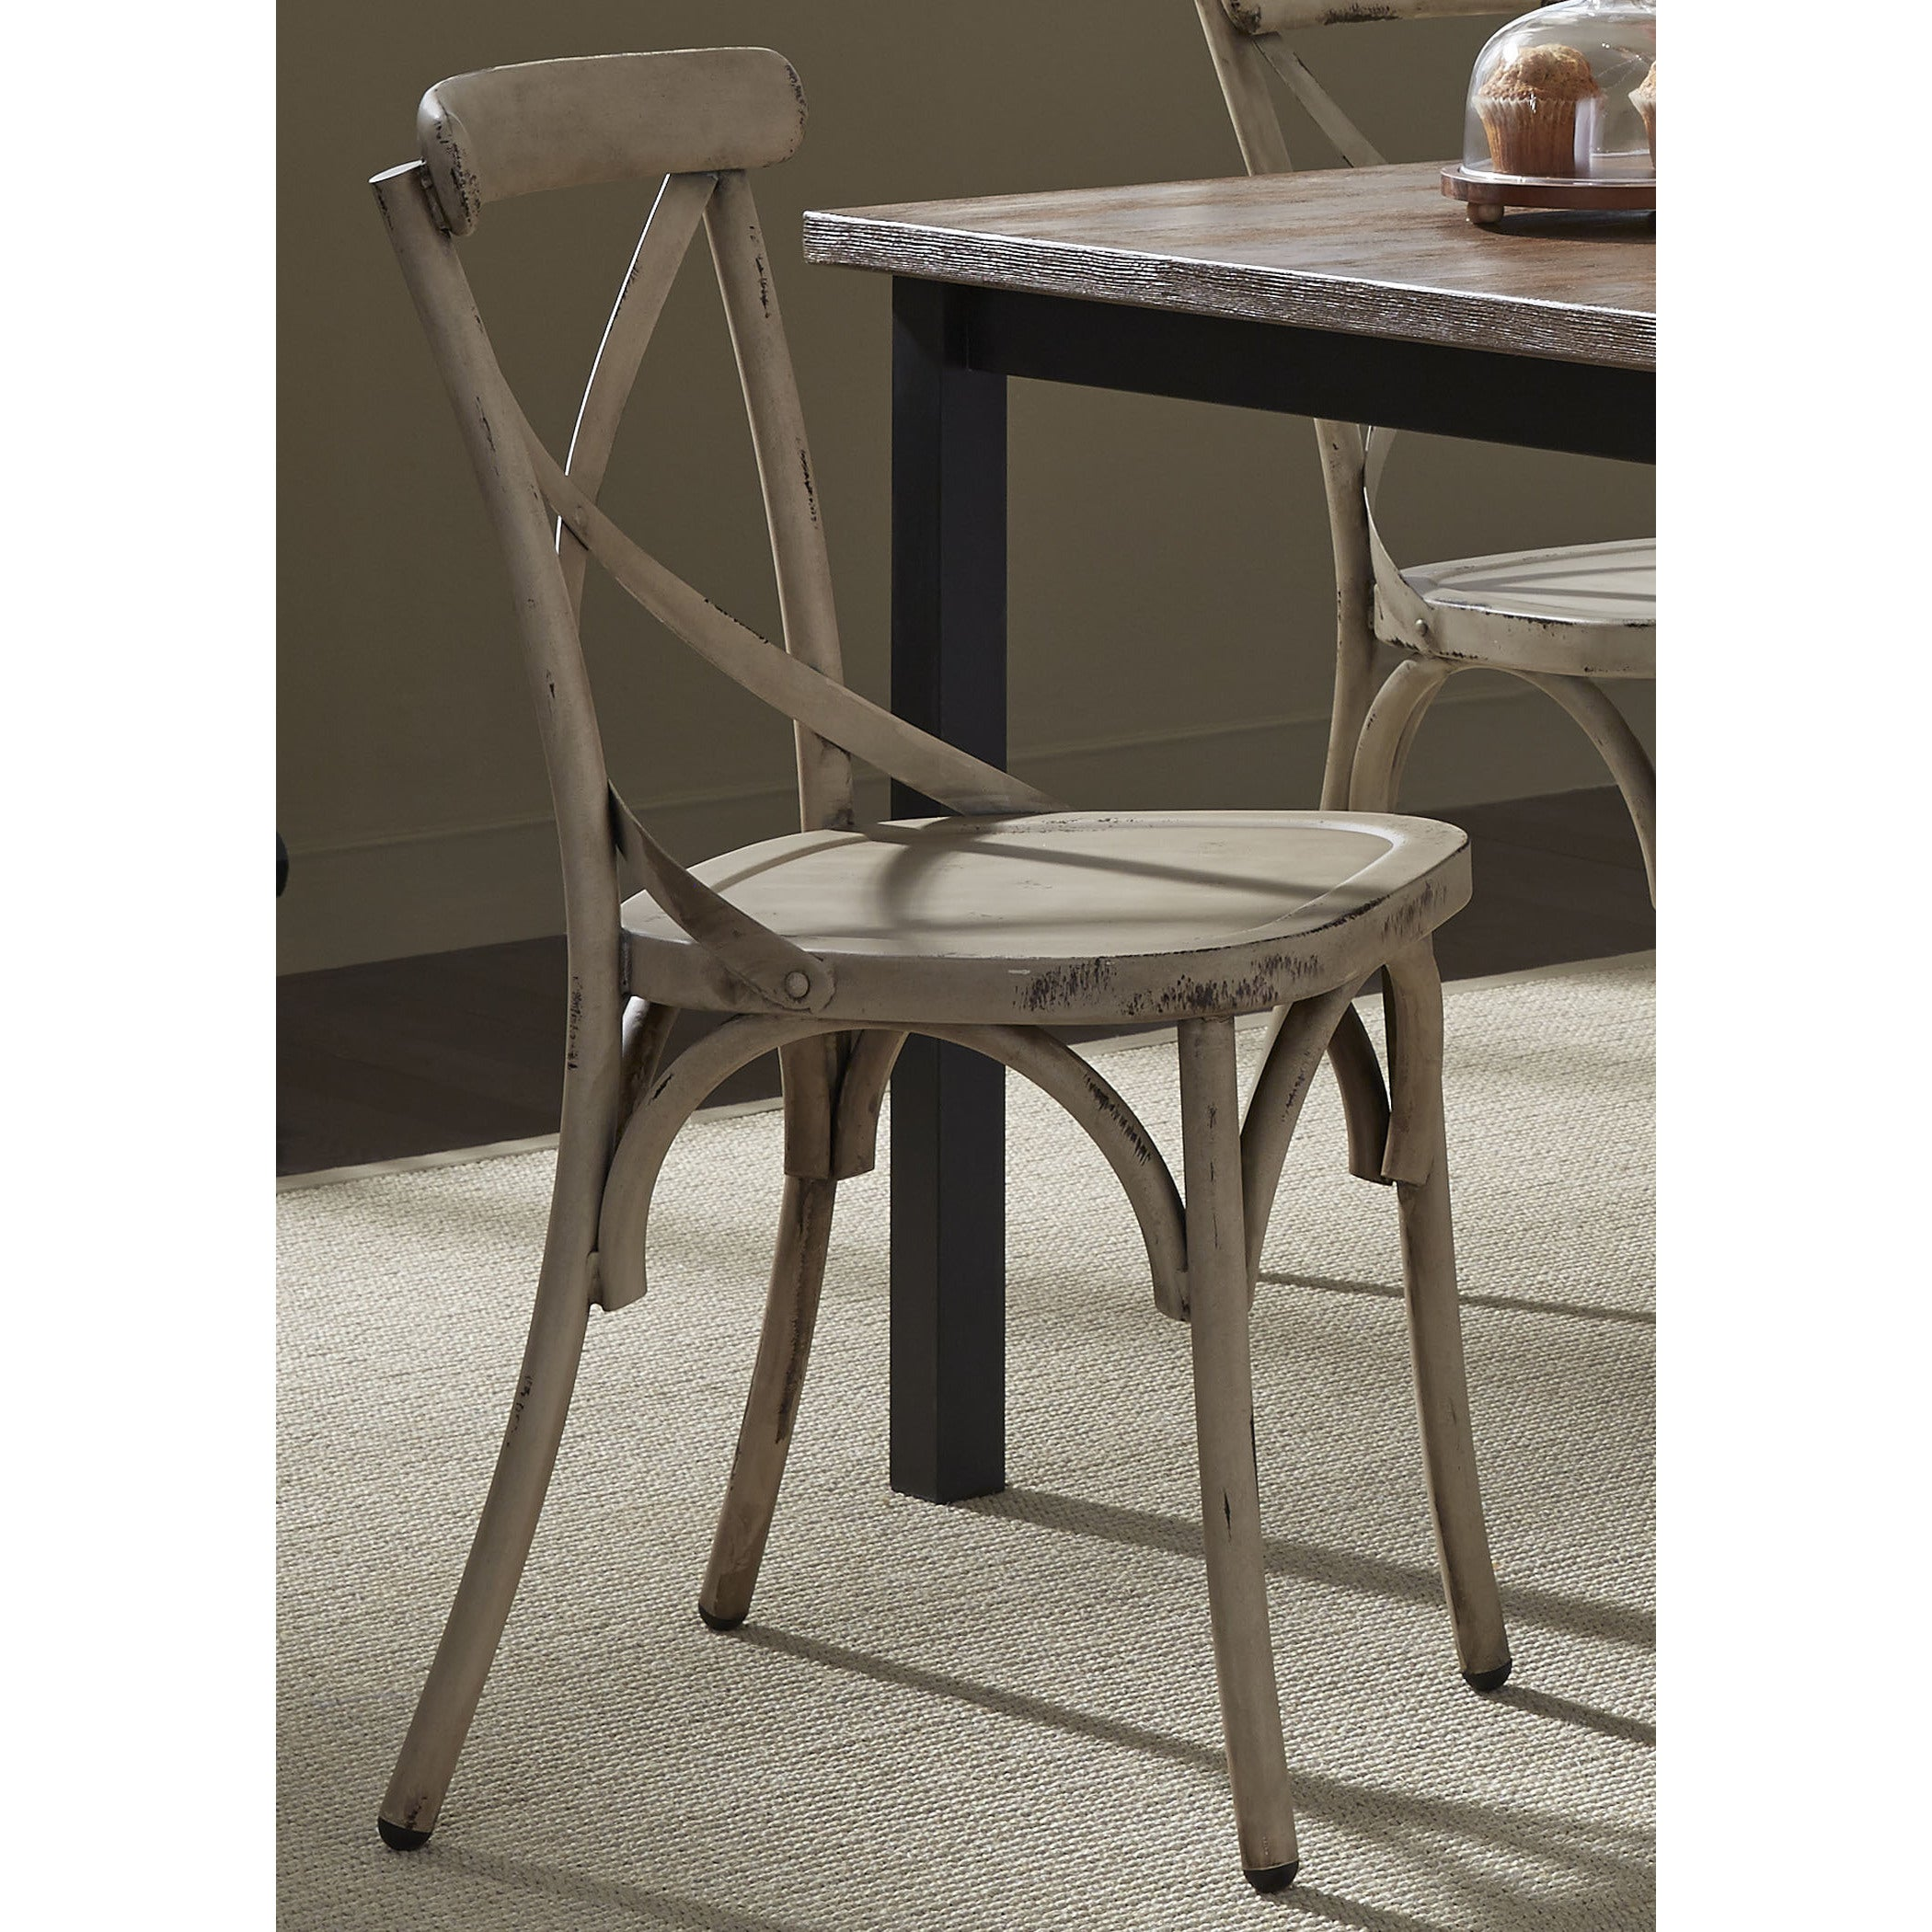 The Gray Barn Santa Rosa Distressed Metal X Back Side Chair Free Shipping On Orders Over 45 10940142